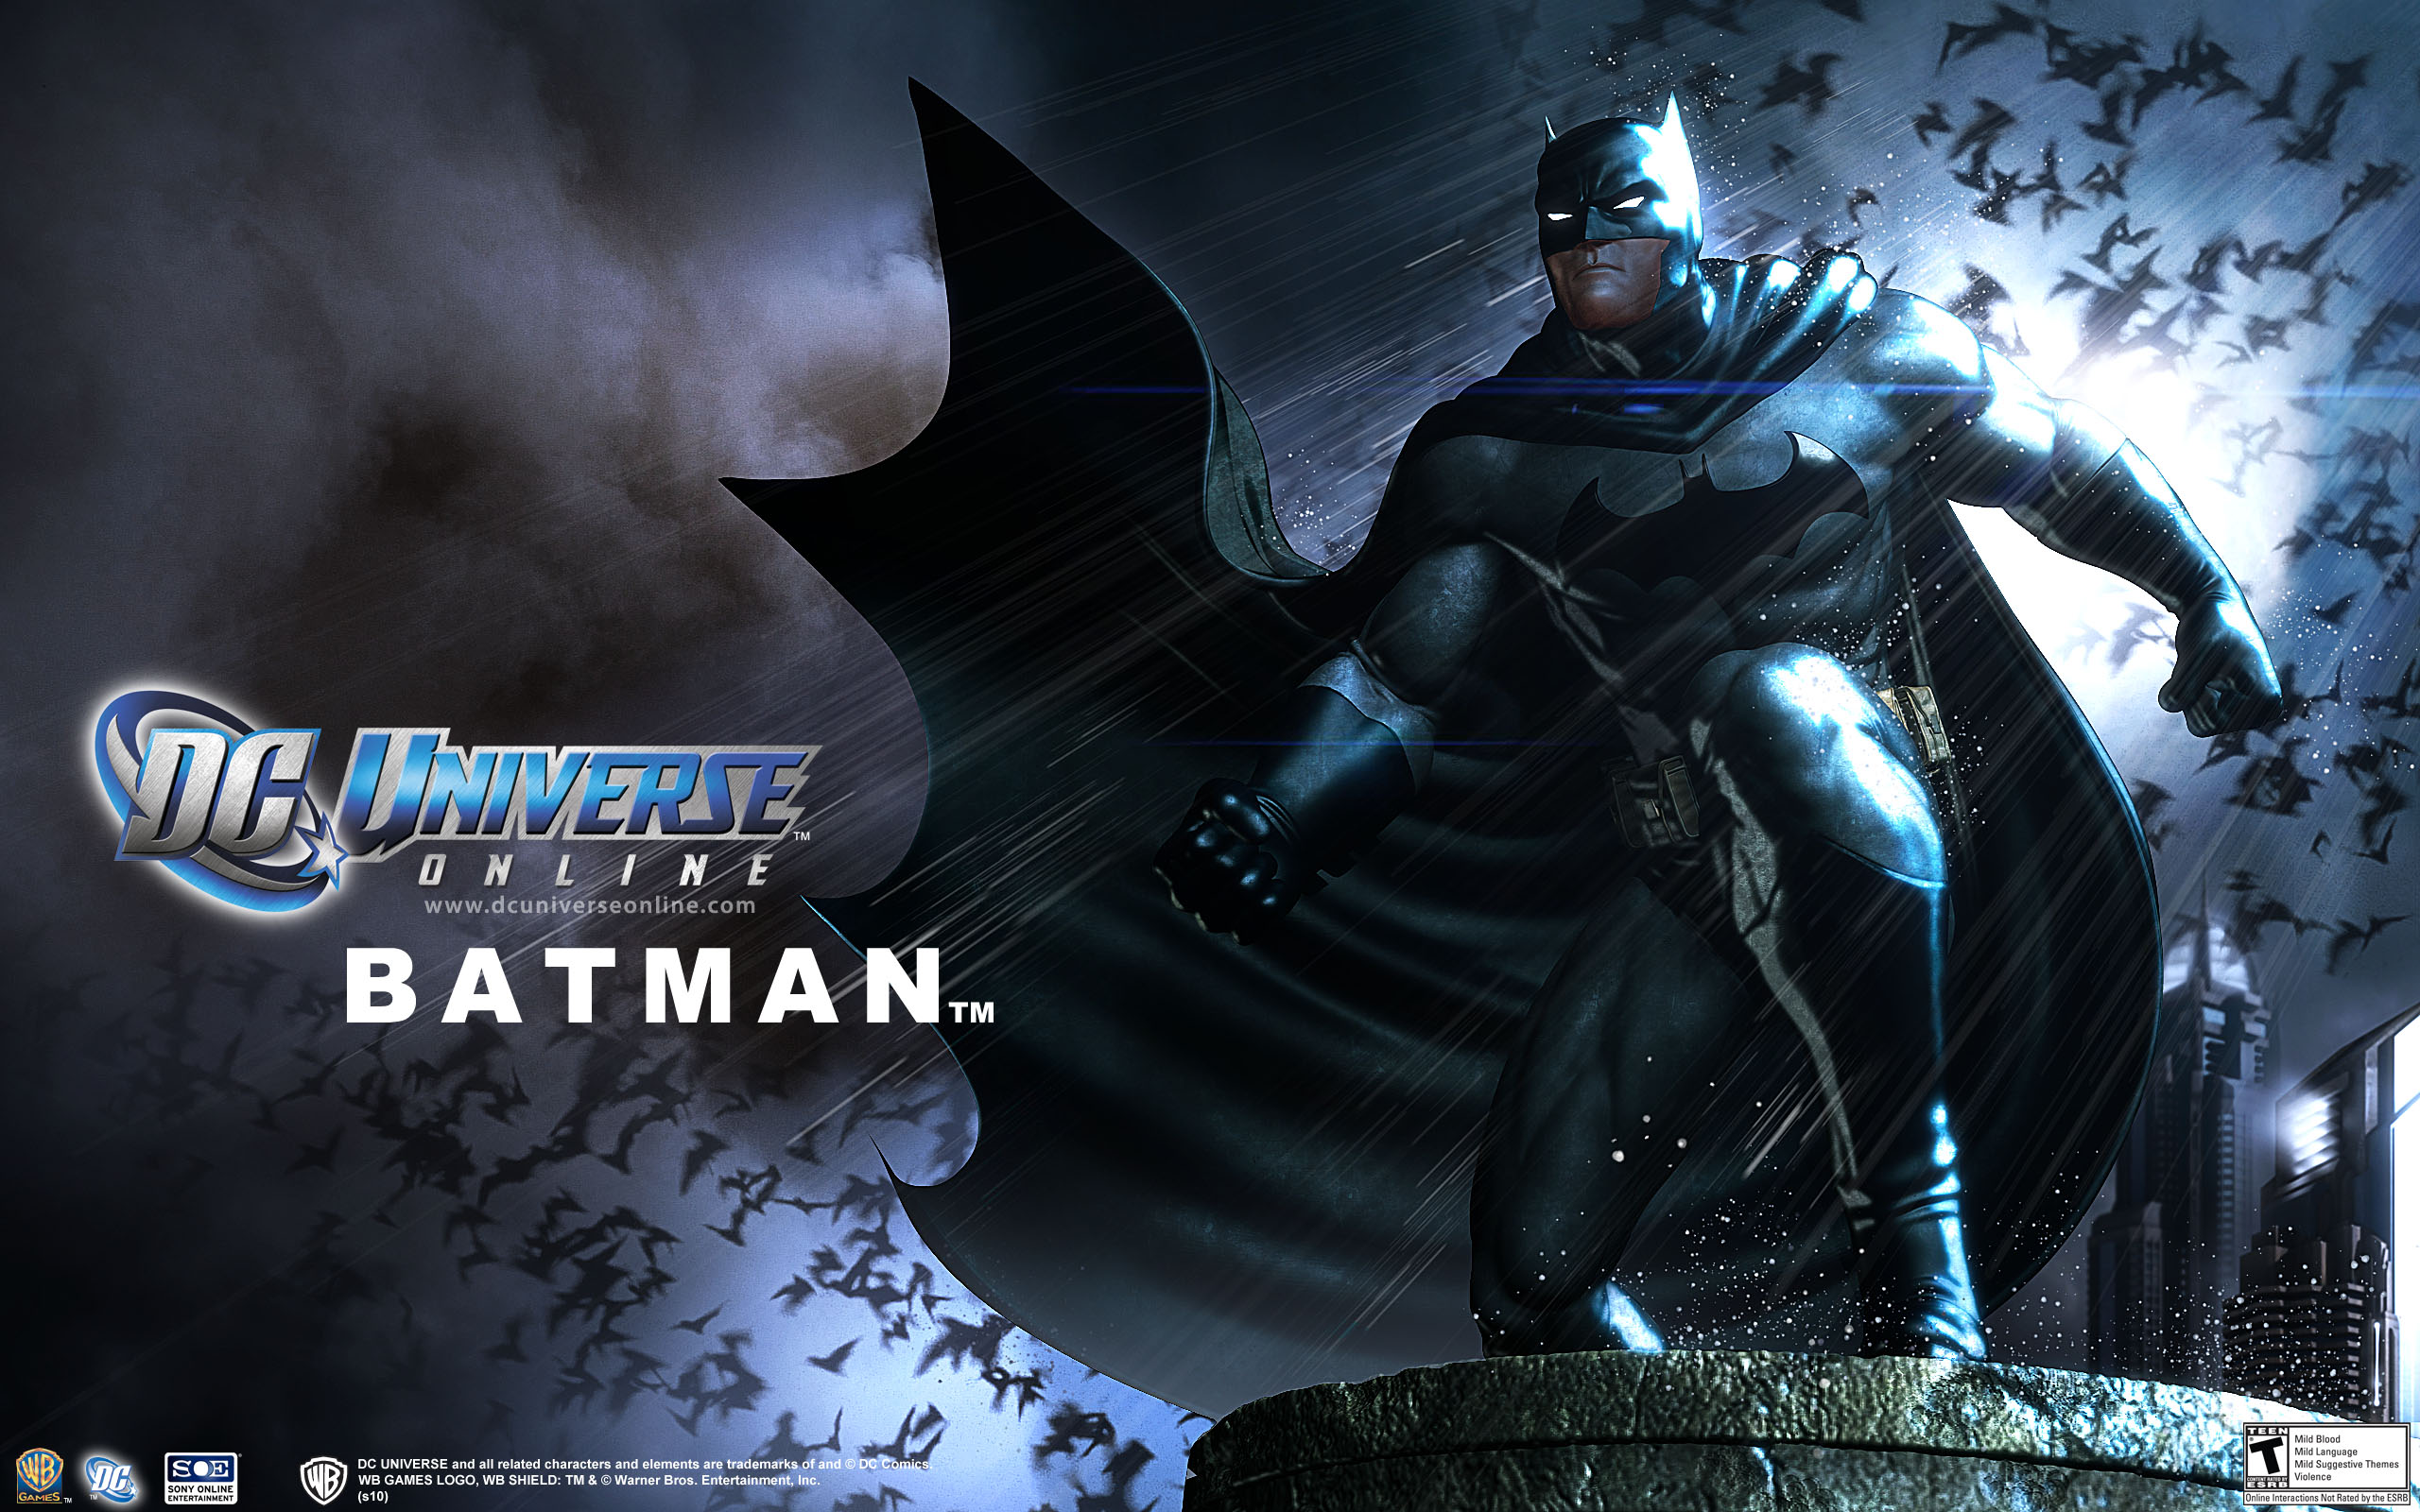 DC Universe Online Batman wallpaper 2560x1600